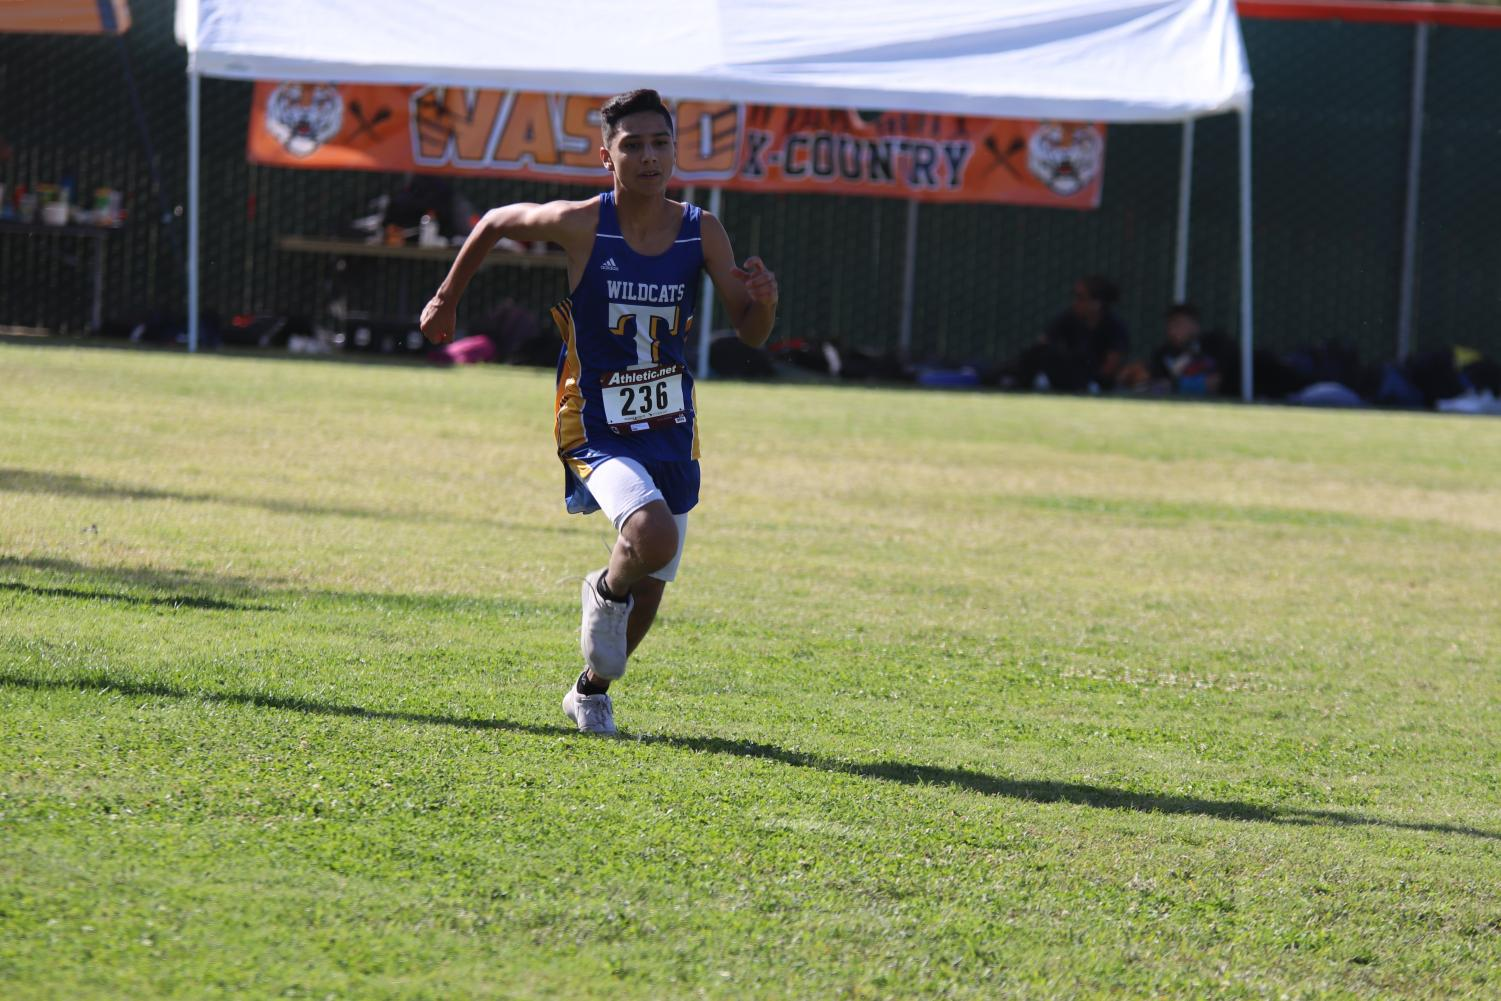 Senior Gustavo Ruiz nearing the finish line of the Wasco Invitational held at Wasco High on October 2, 2019